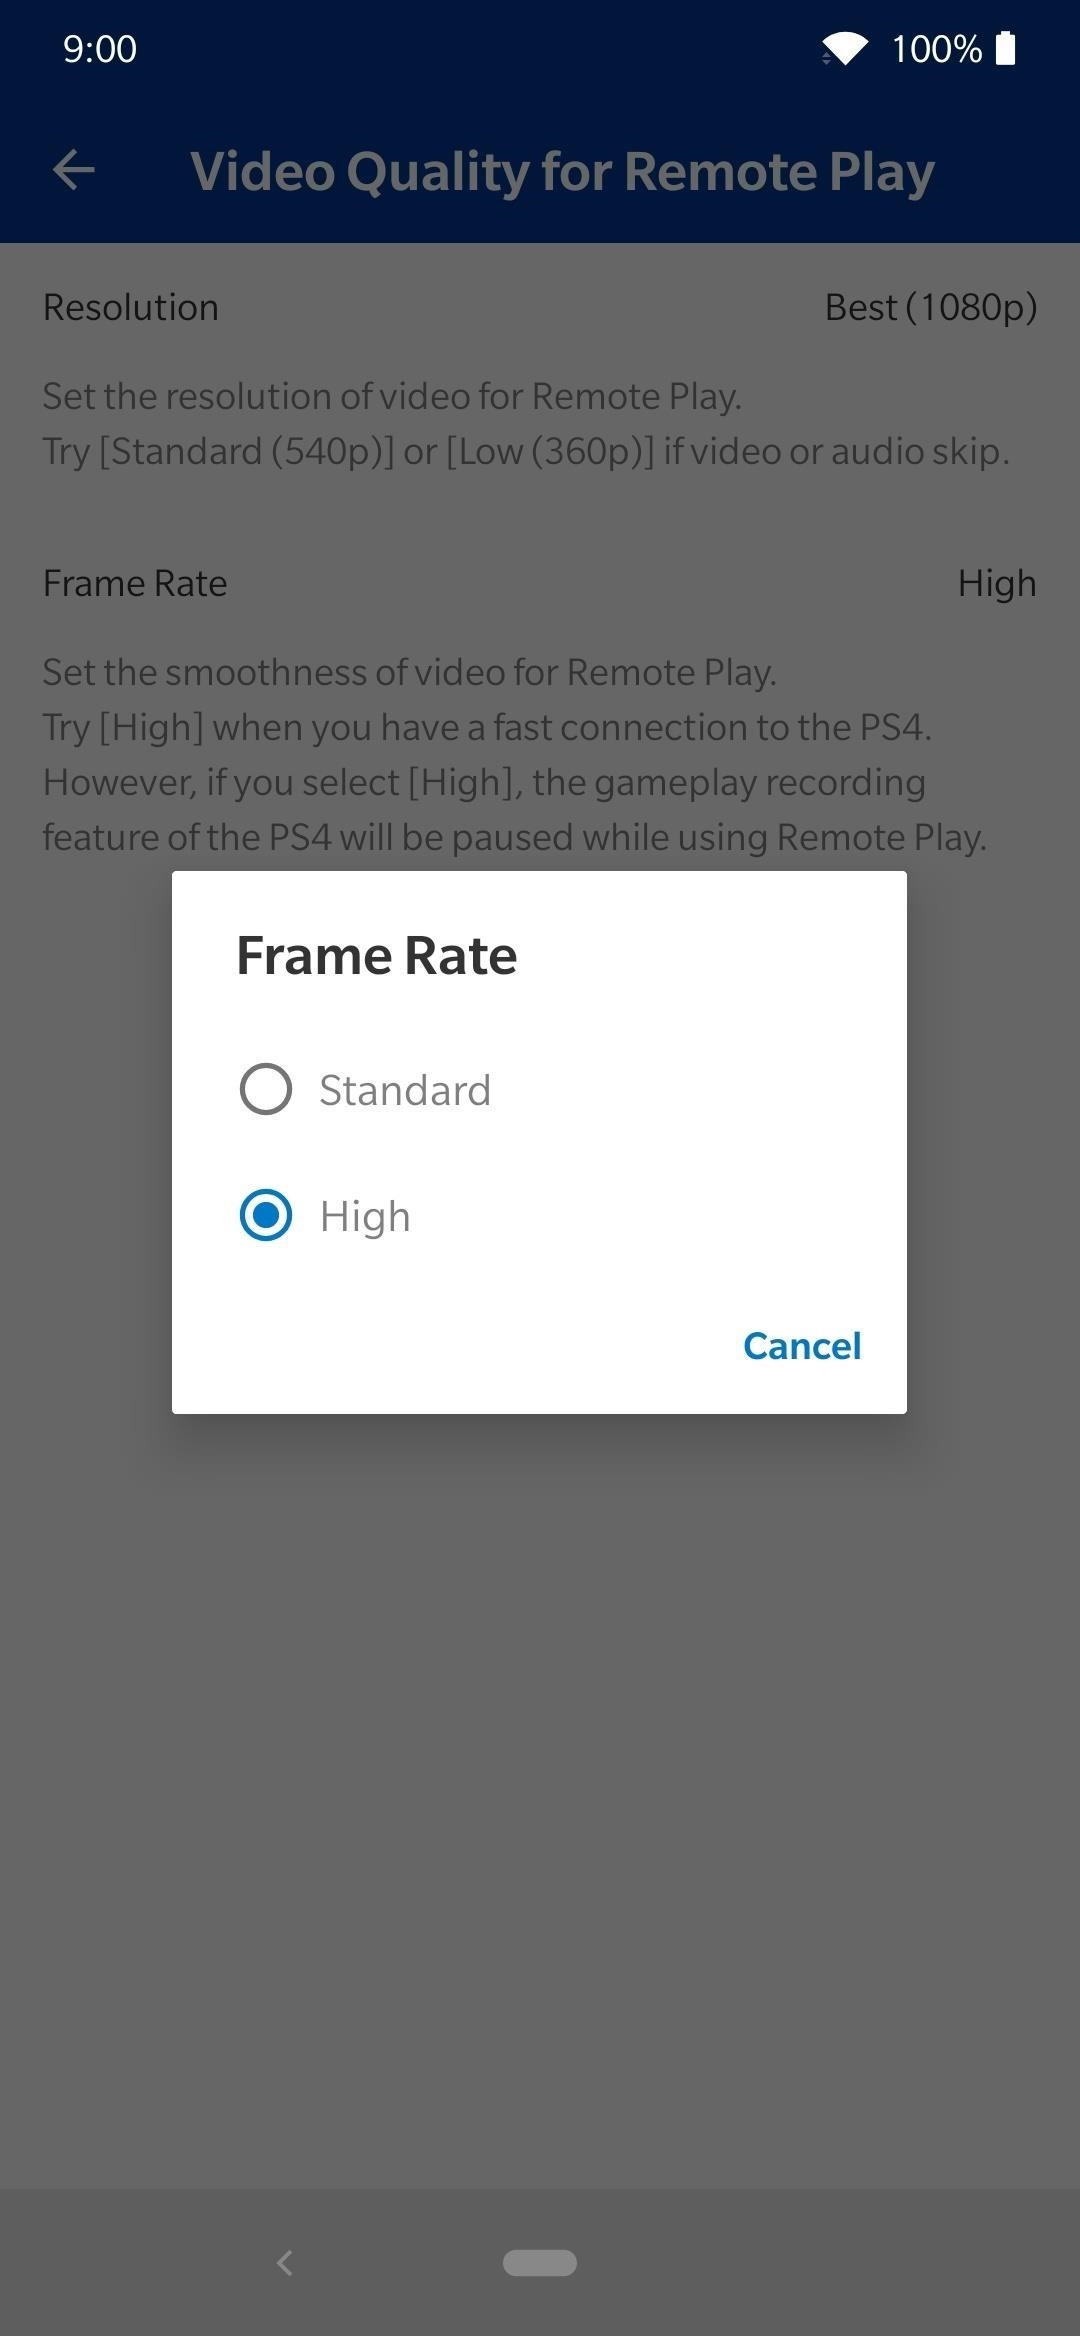 How to Play Your Favorite PS4 Games Remotely on Any Android